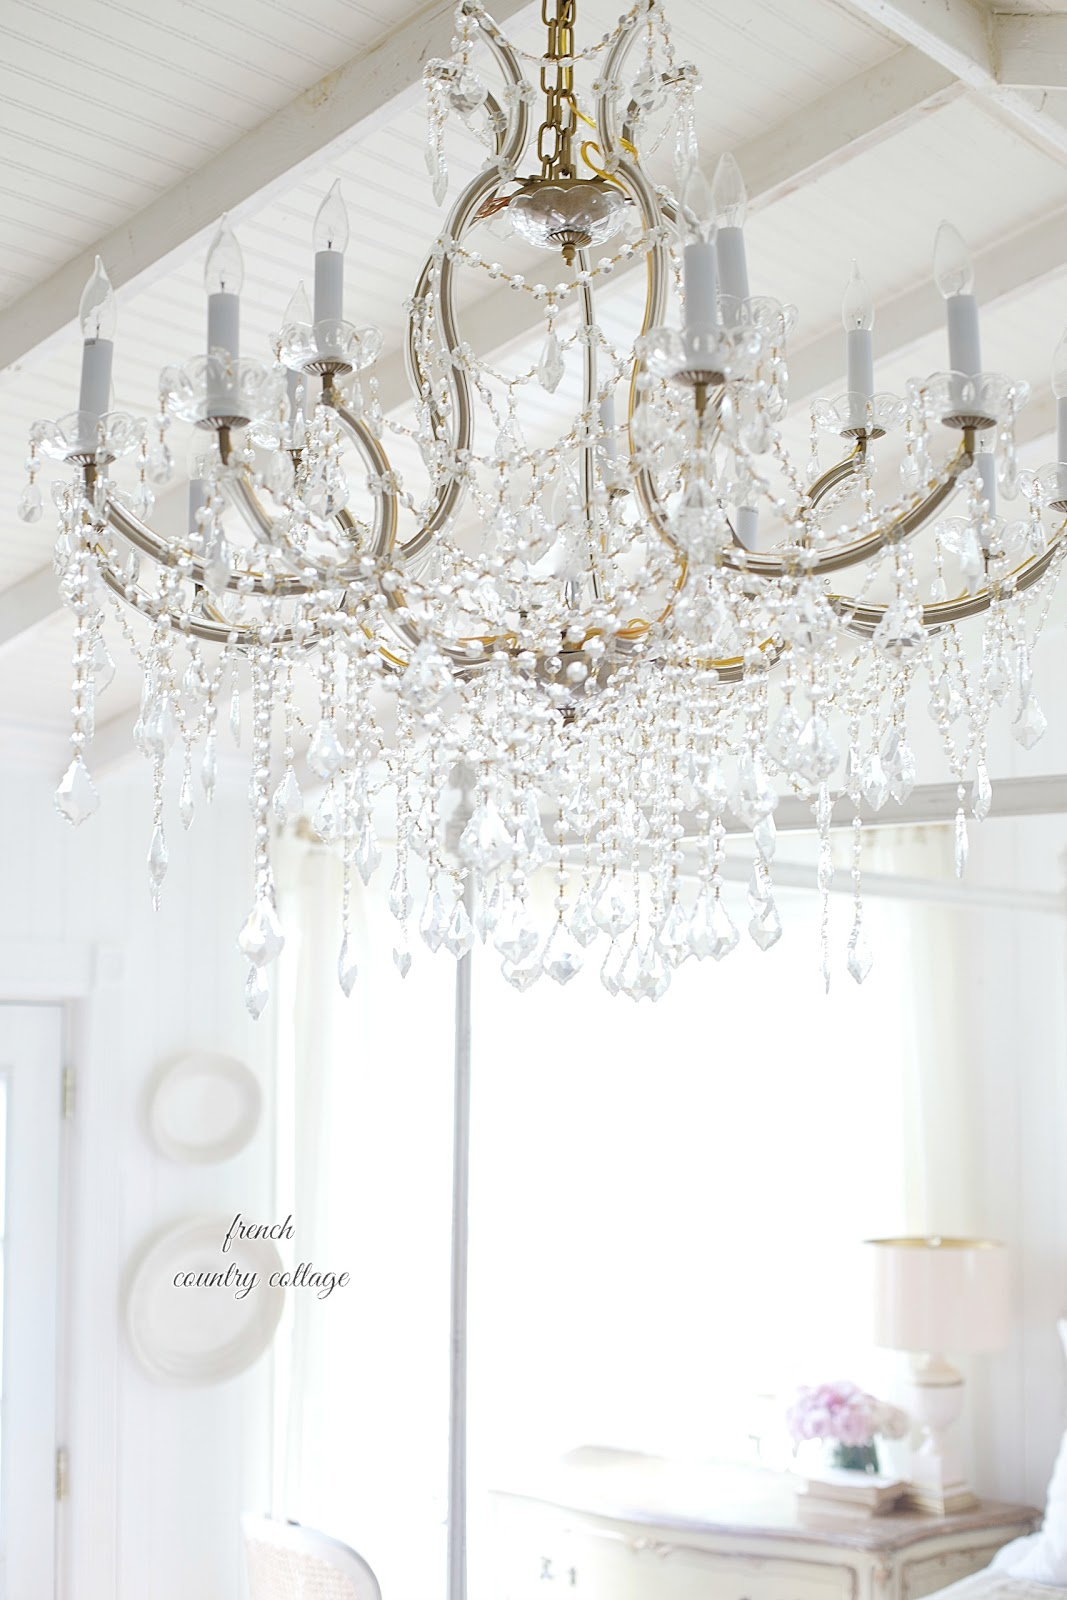 Great French Cottage crystal chandelier in bedroom